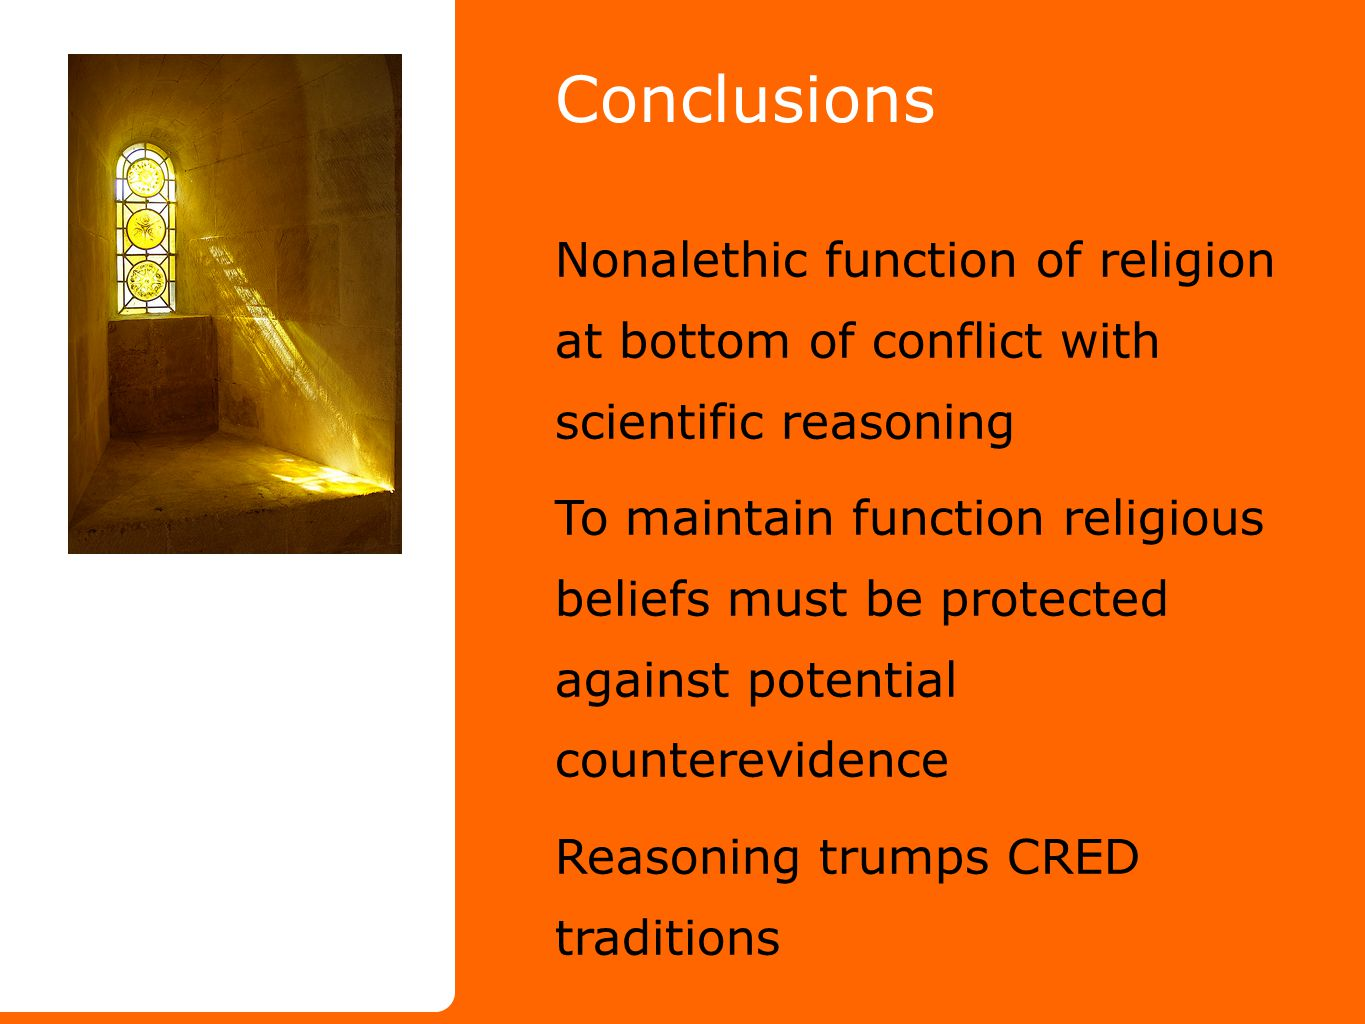 Conclusions Nonalethic function of religion at bottom of conflict with scientific reasoning To maintain function religious beliefs must be protected against potential counterevidence Reasoning trumps CRED traditions